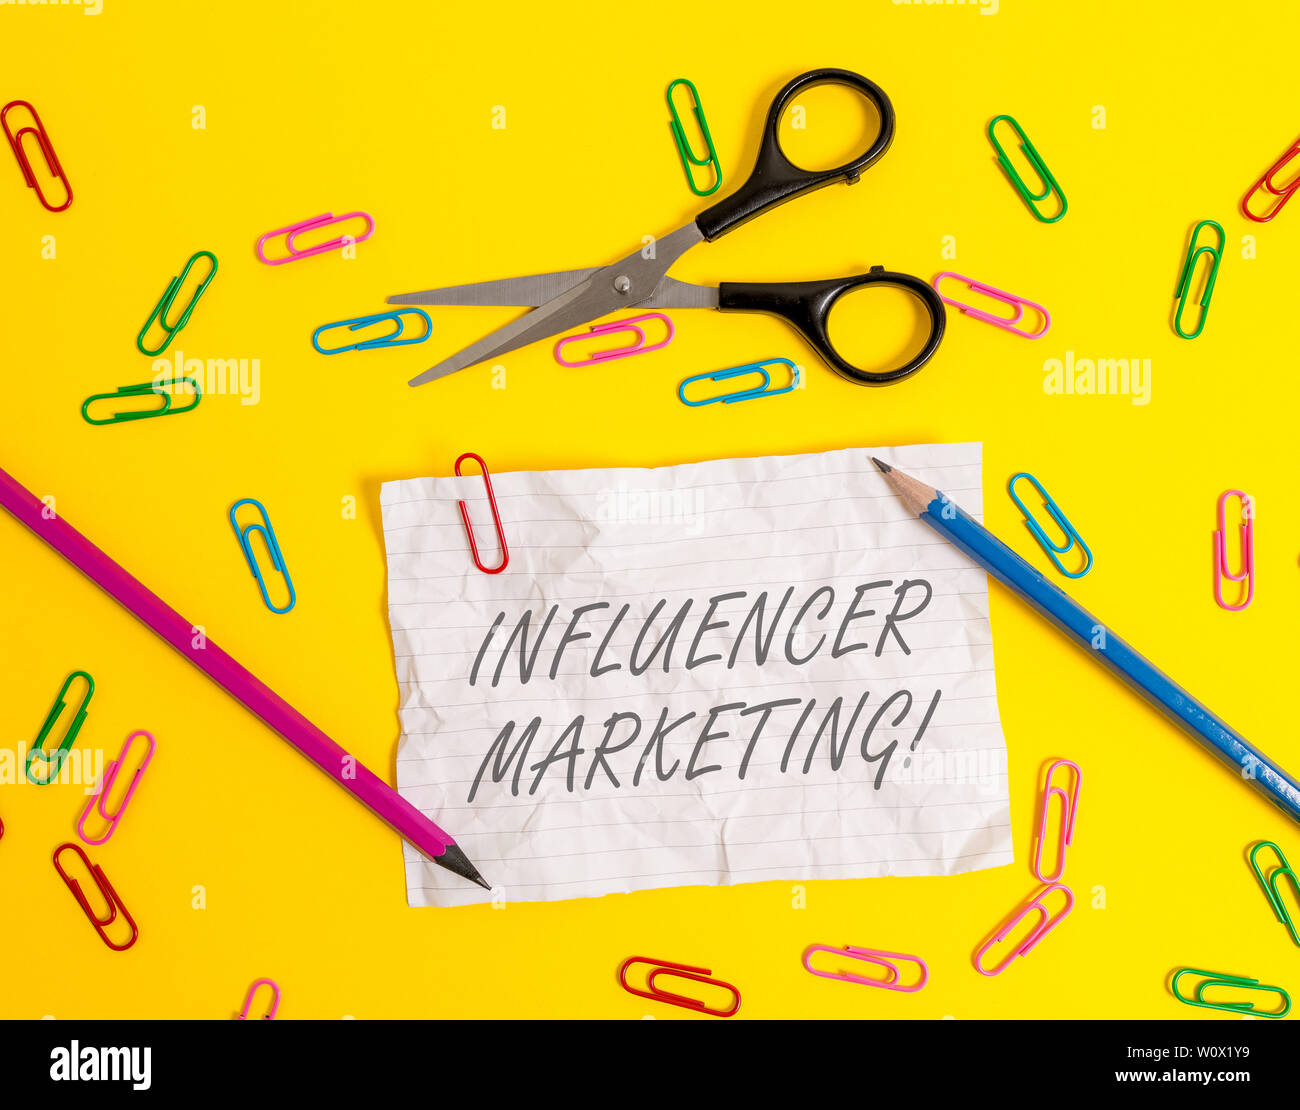 Writing note showing Influencer Marketing. Business concept for Endorser who Influence Potential Target Customers Crushed striped paper sheet scissors - Stock Image